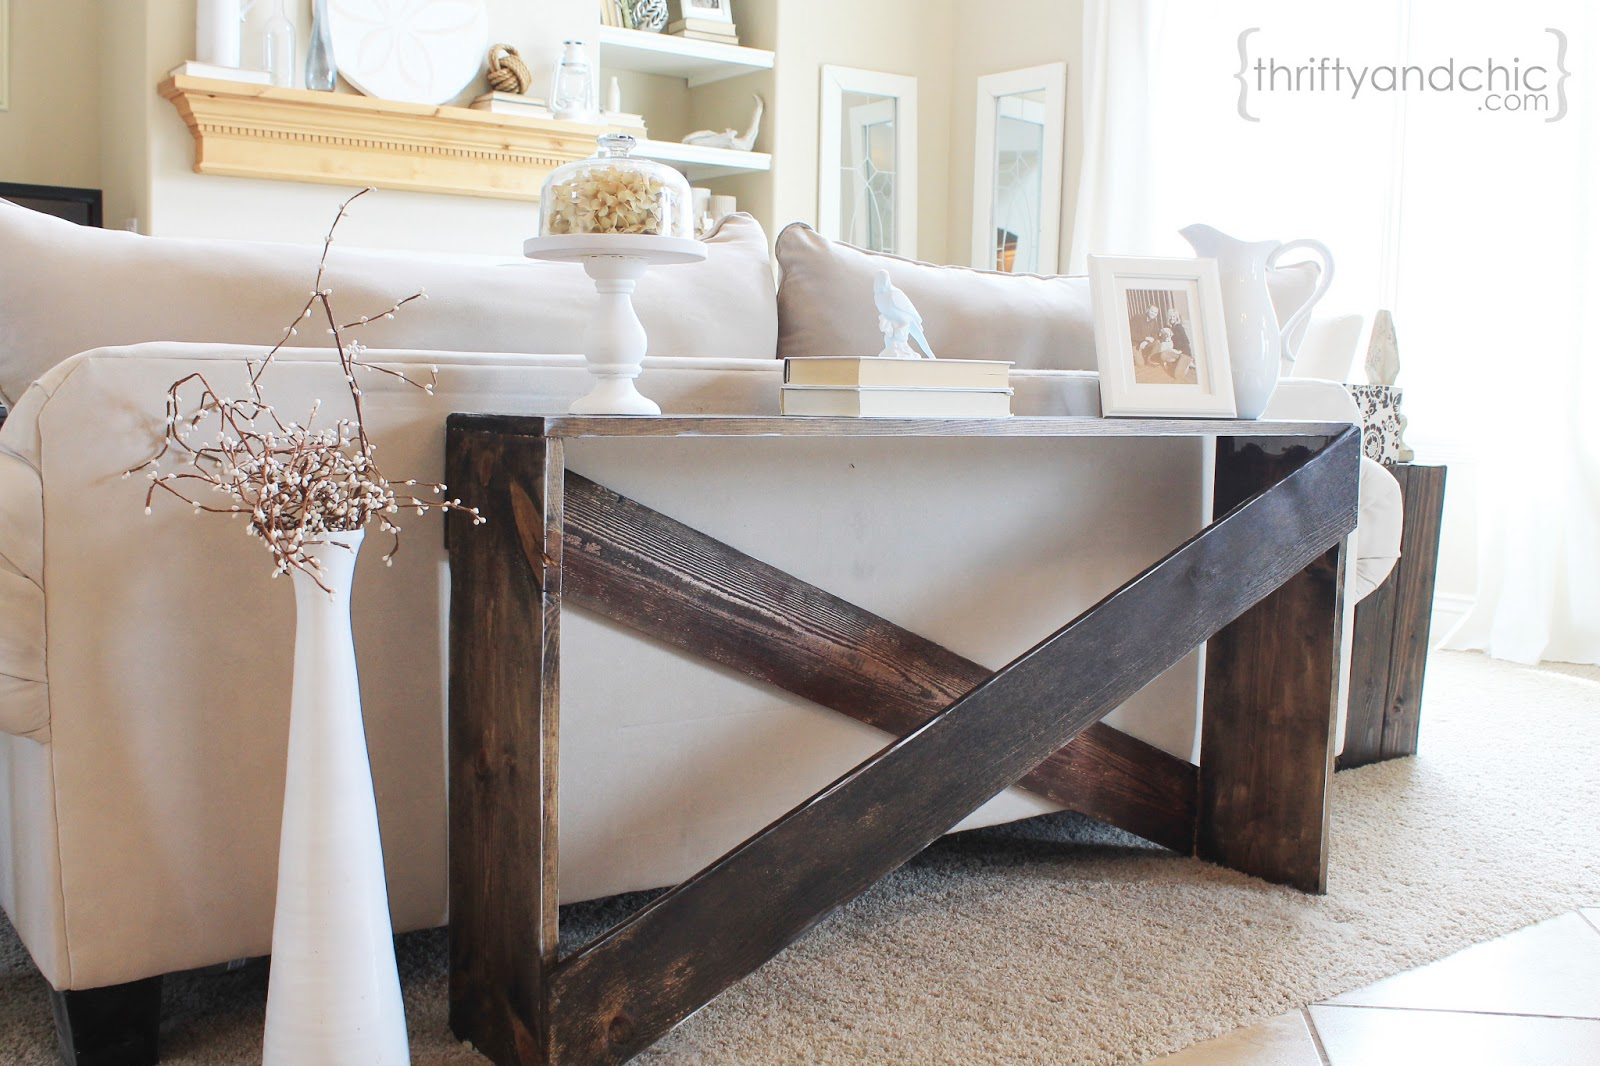 building a sofa table power recliner stopped working thrifty and chic diy projects home decor